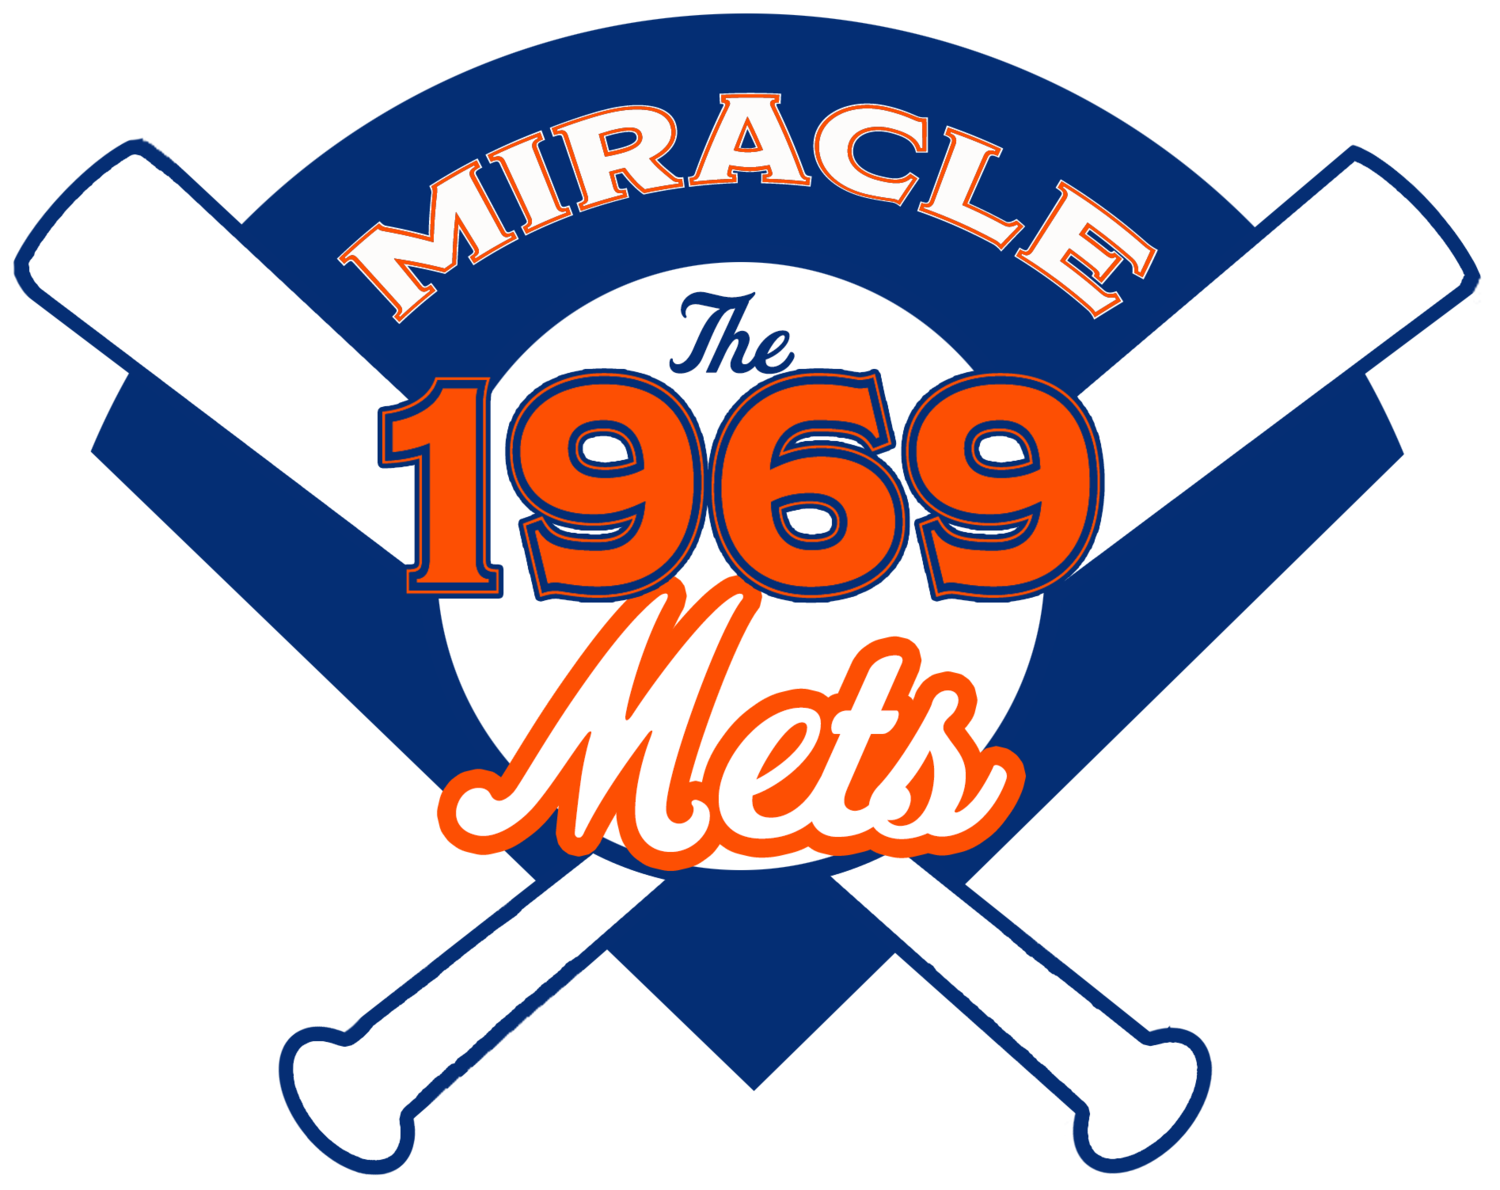 Mets baseball clipart graphic transparent library 69 Miracle Mets graphic transparent library